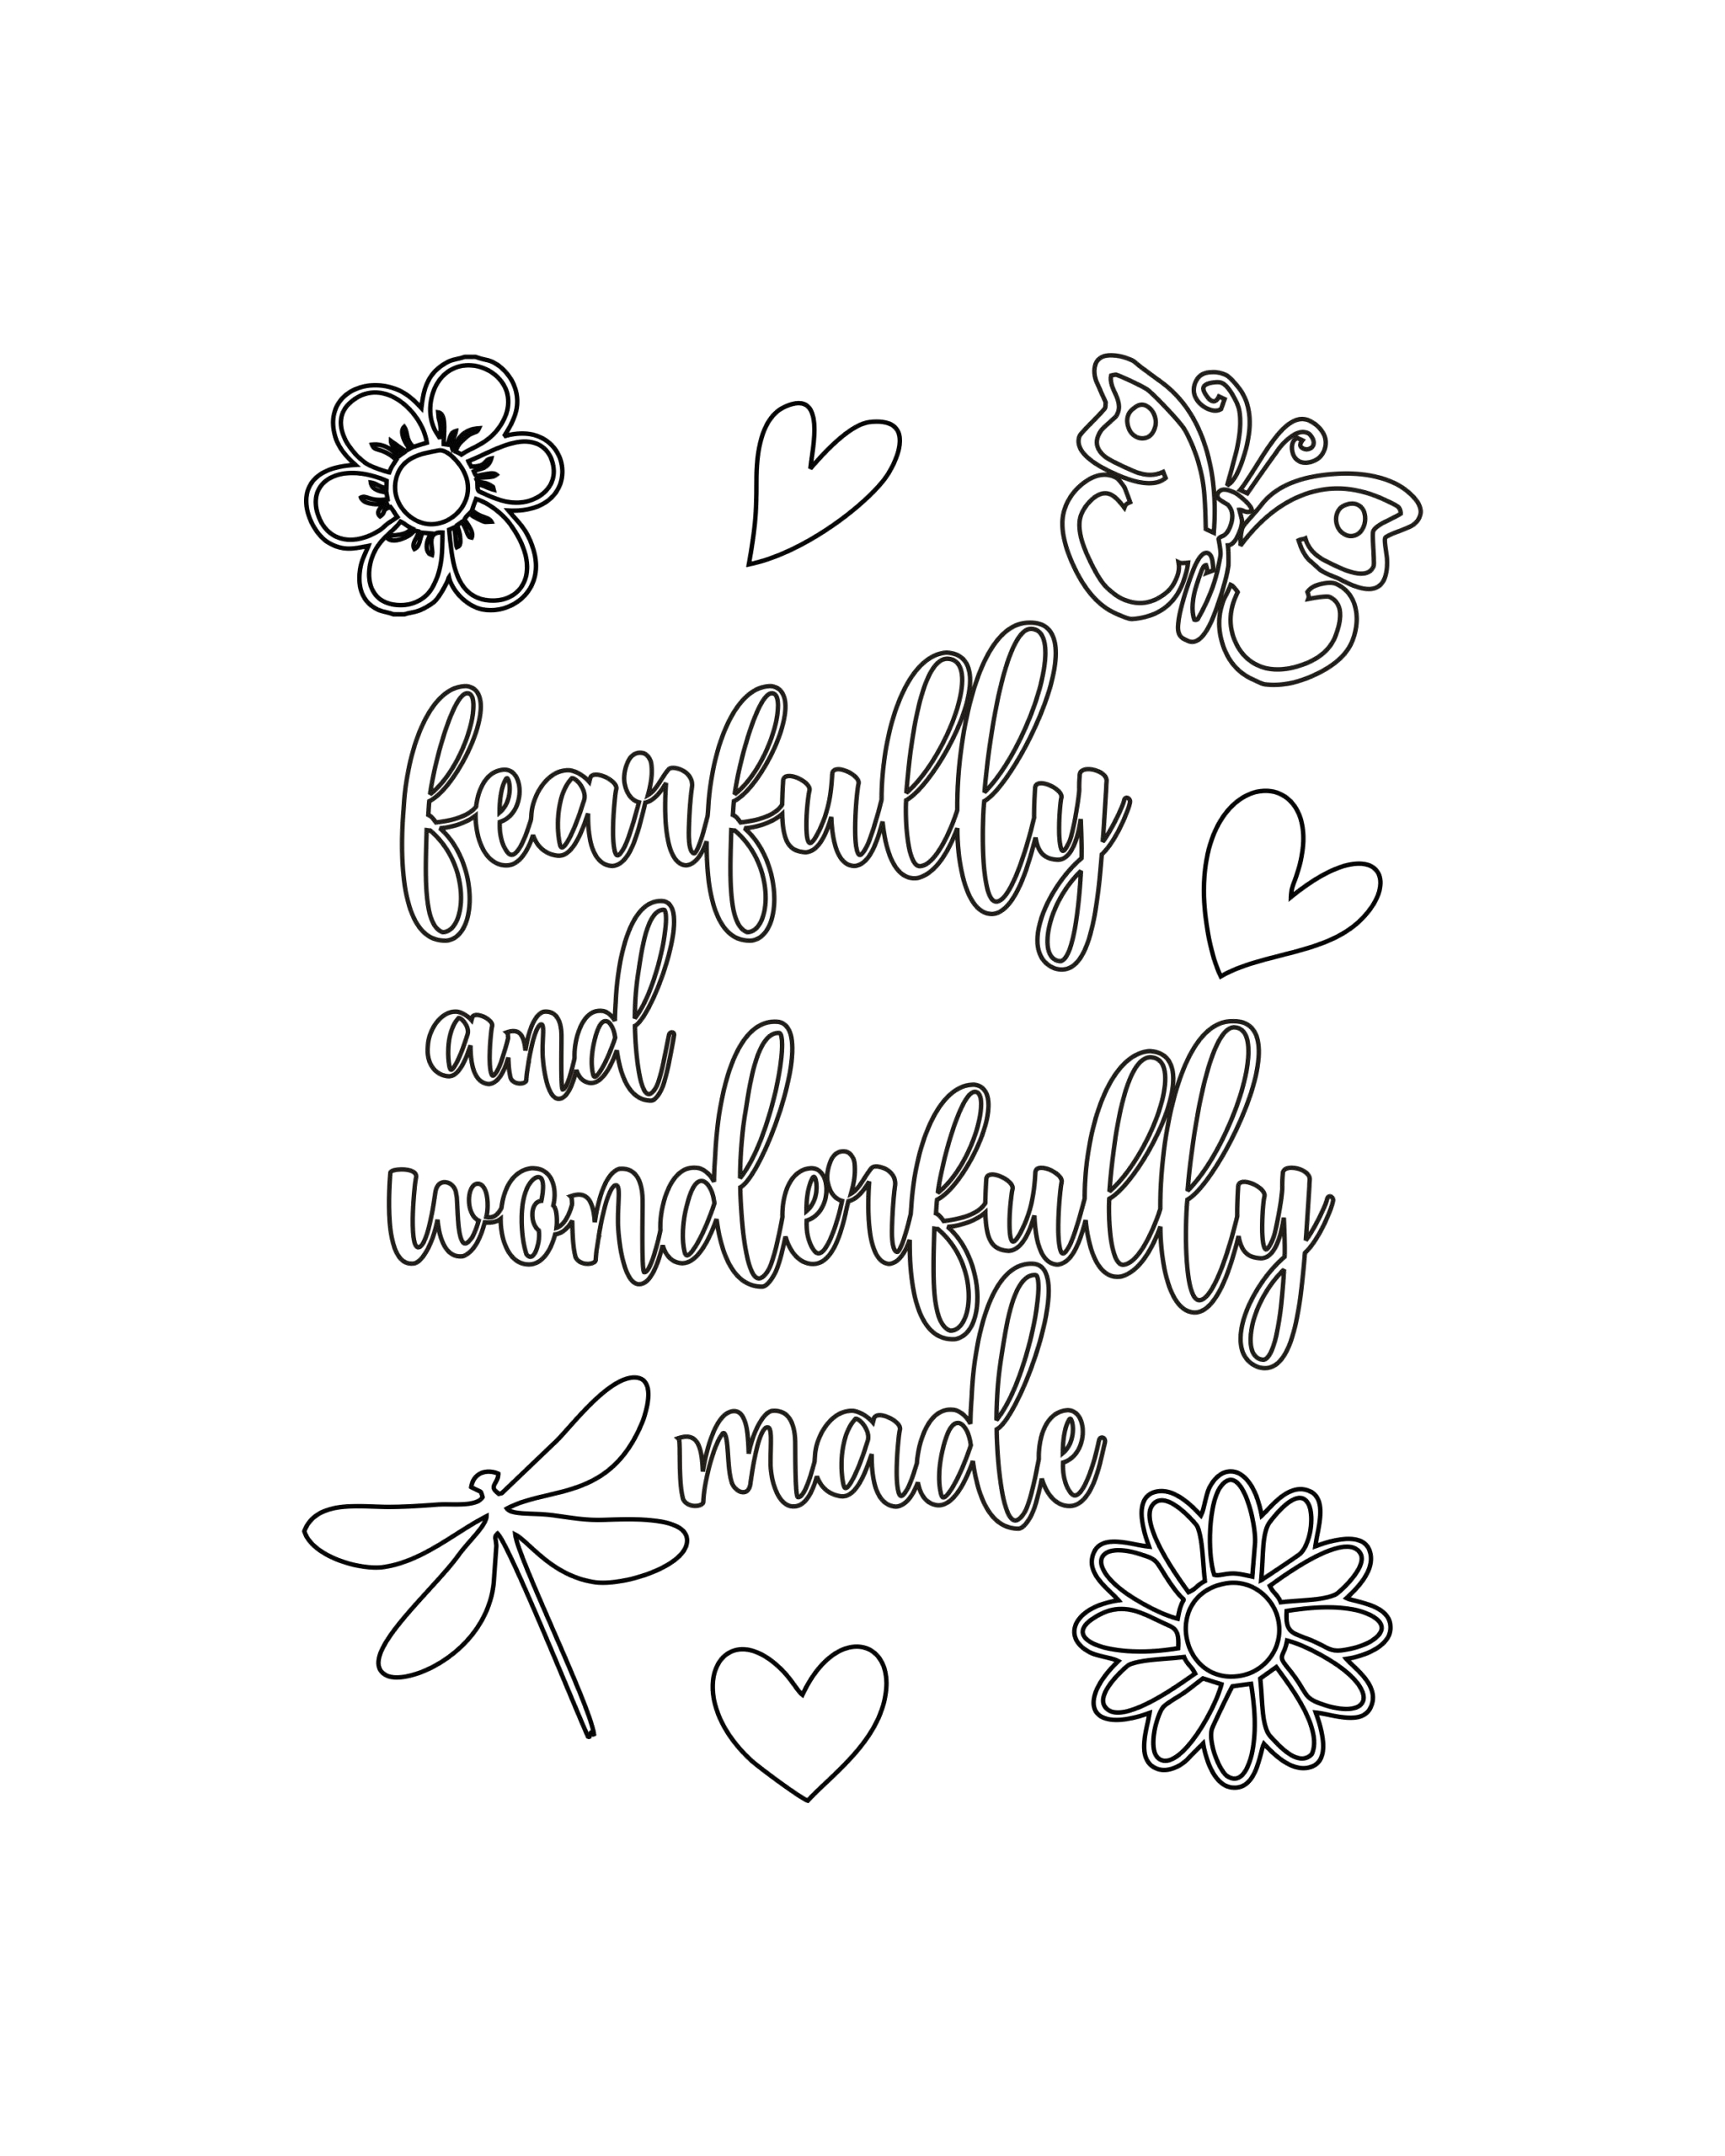 I Am Fearfully and Wonderfully Made Coloring Page Free Fearfully and Wonderfully Made Coloring Page